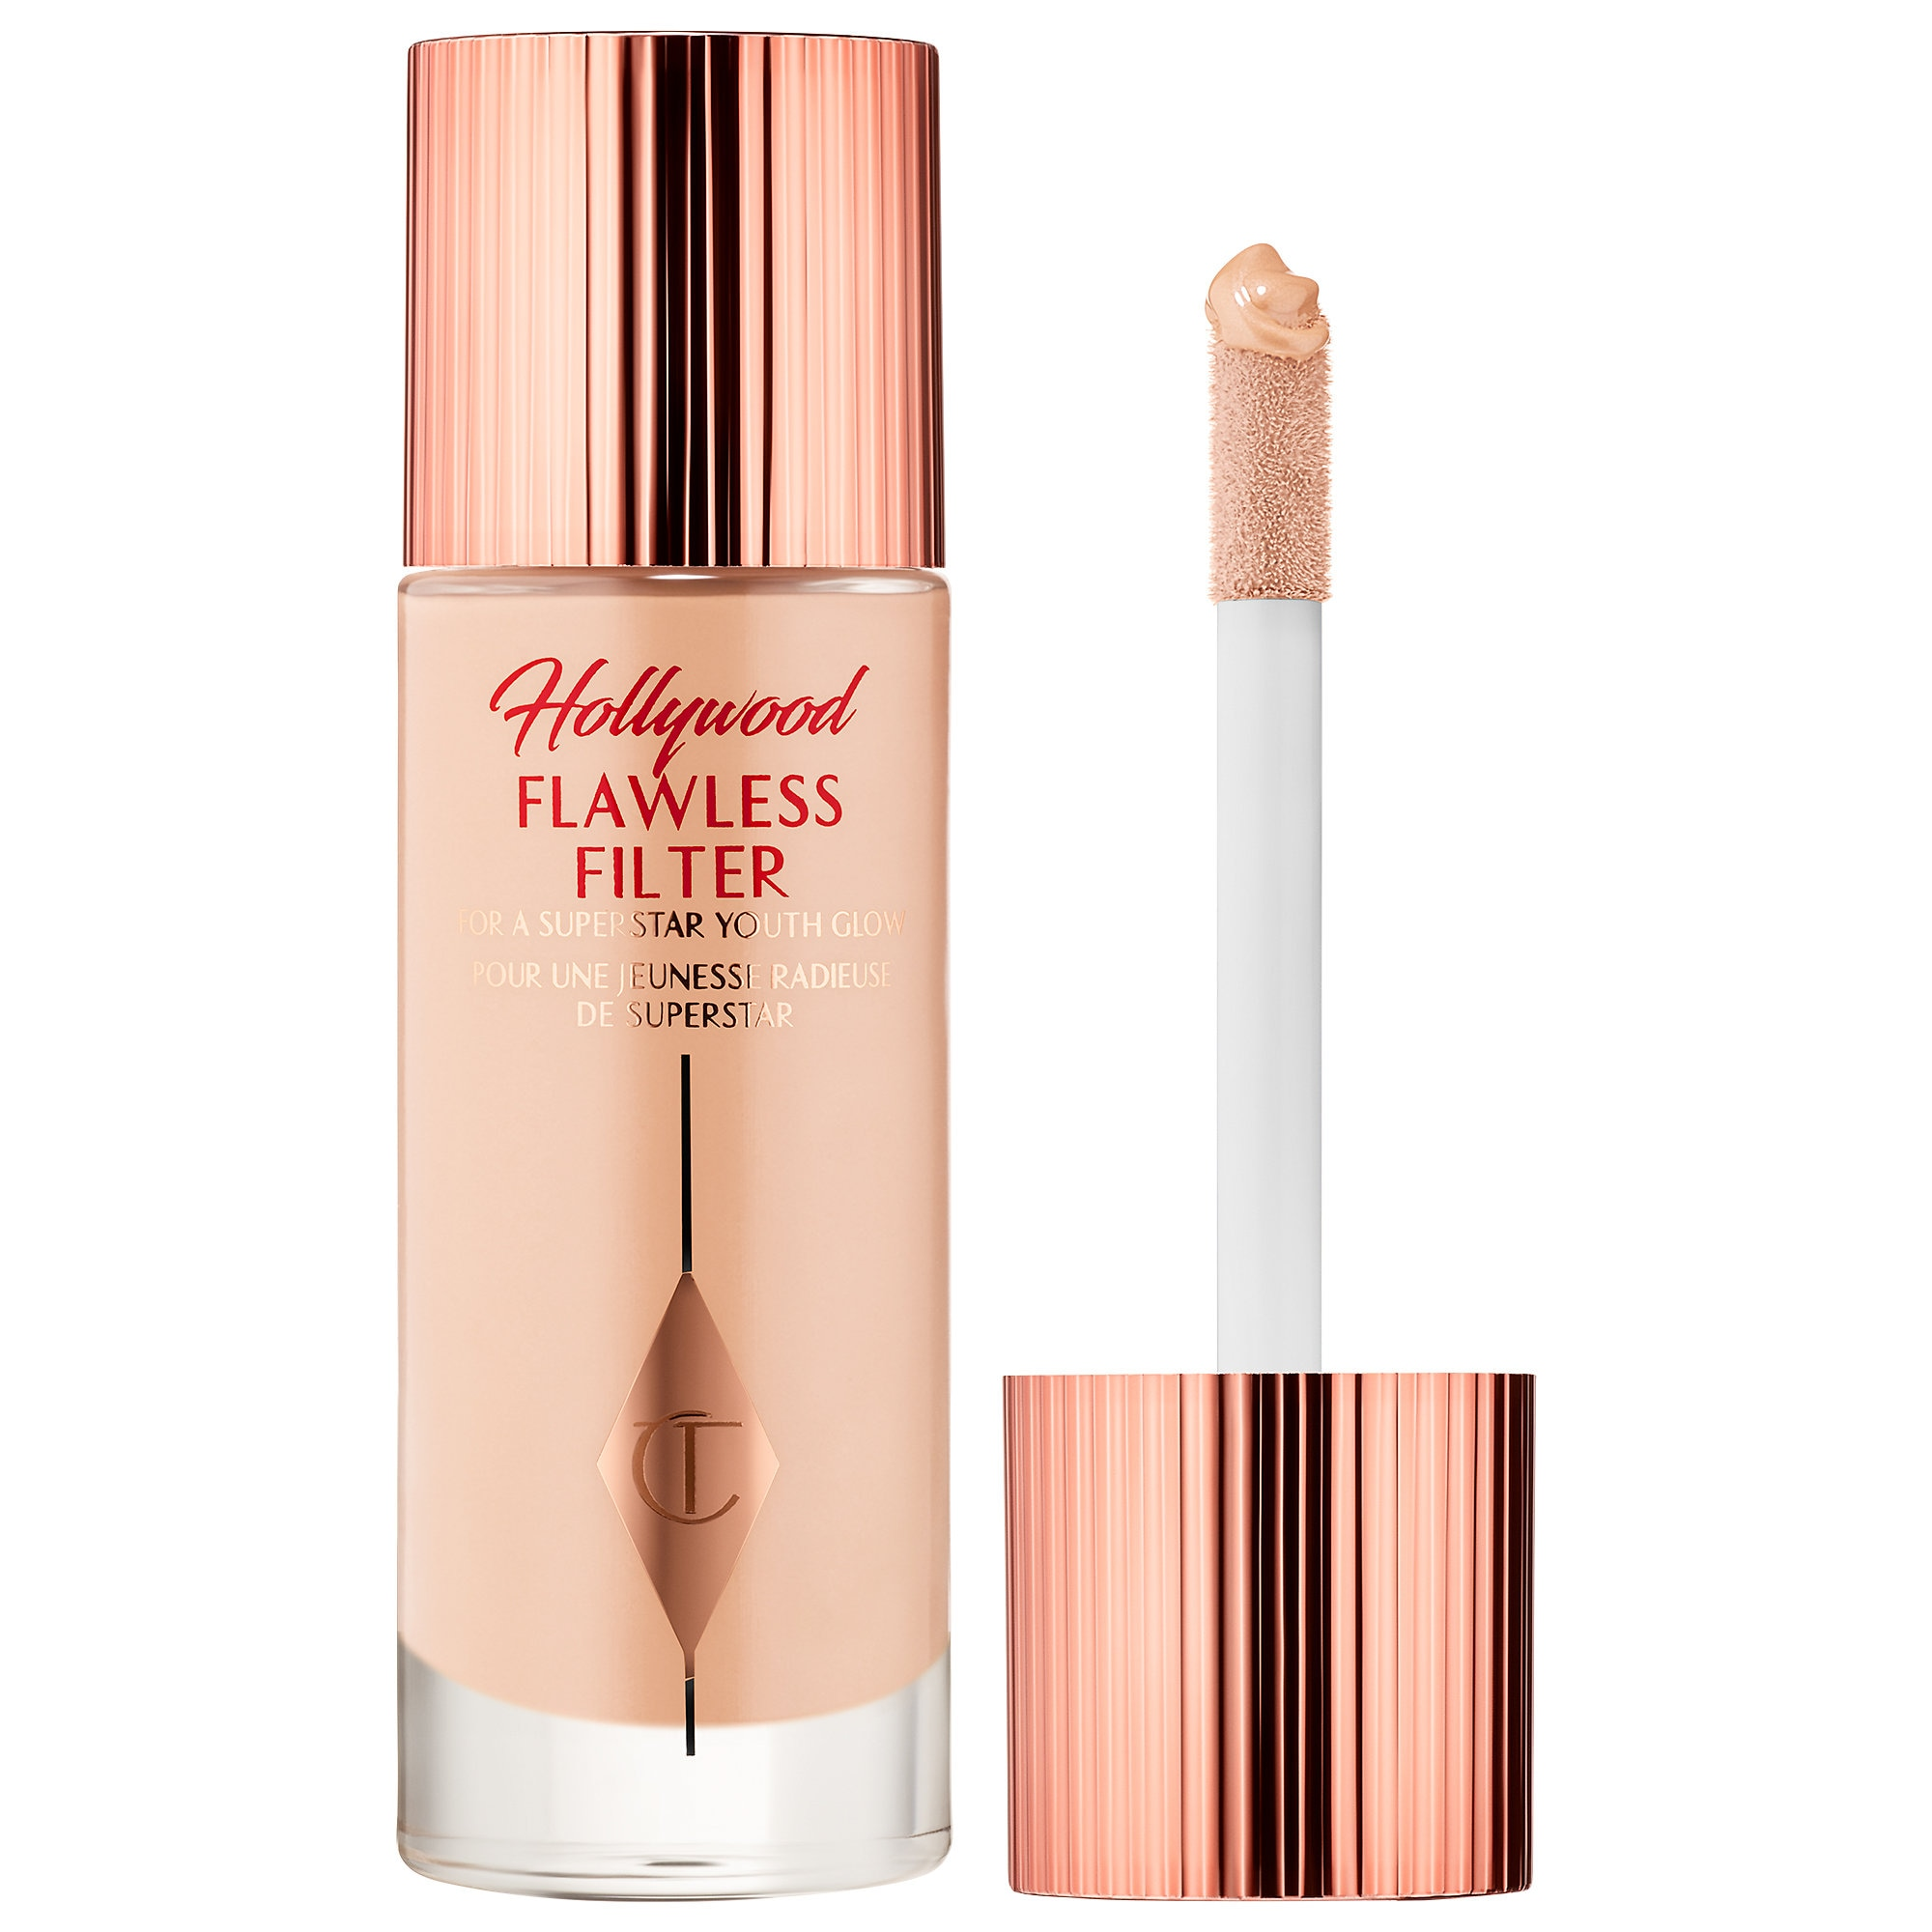 Sephora - Hollywood Flawless Filter - Charlotte Tilbury | Sephora